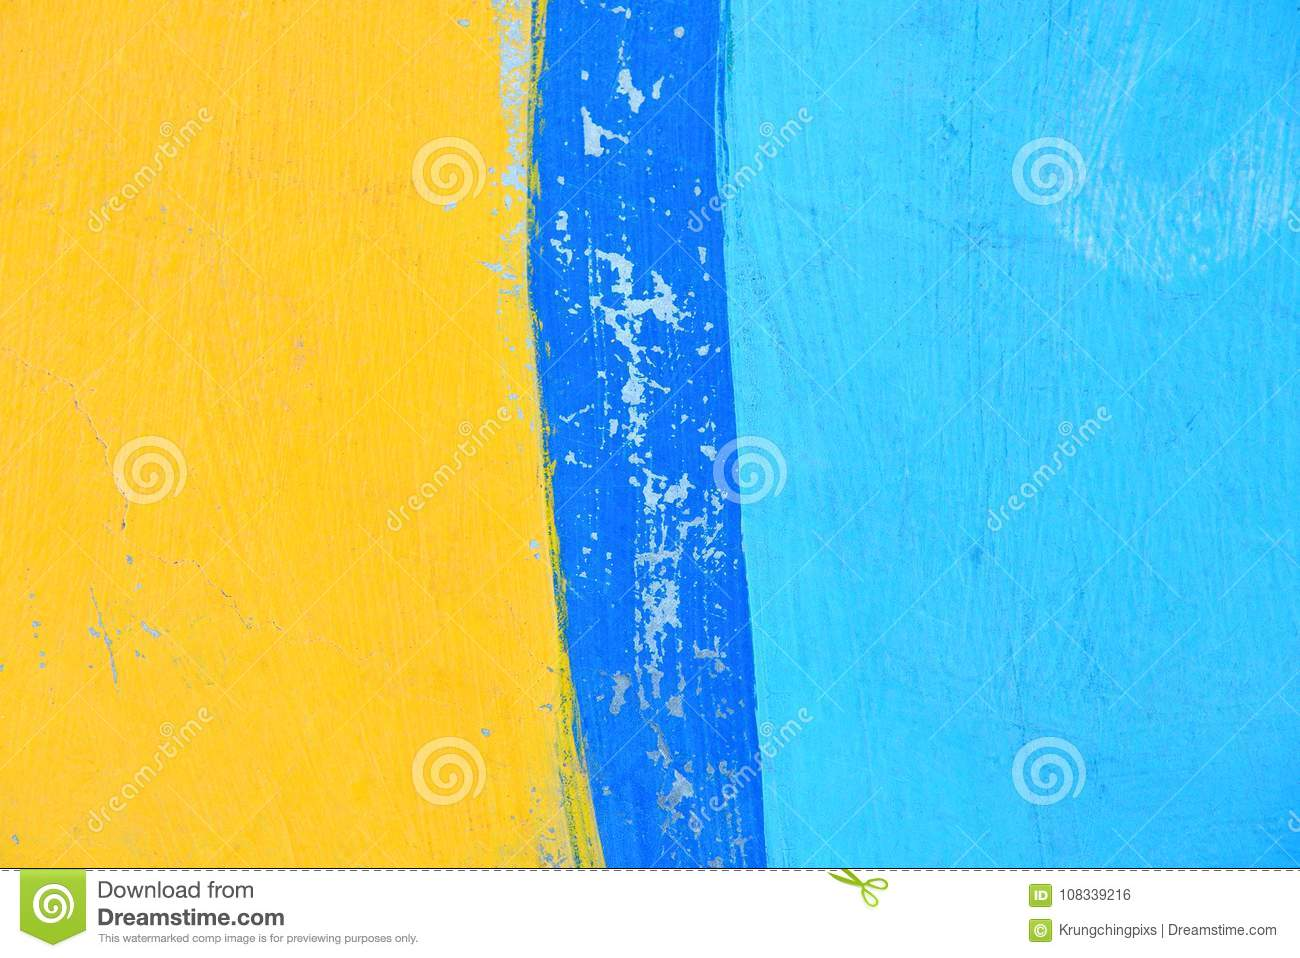 Concrete Wall Painted In Colors Of Yellow And Blue. Stock Photo ...